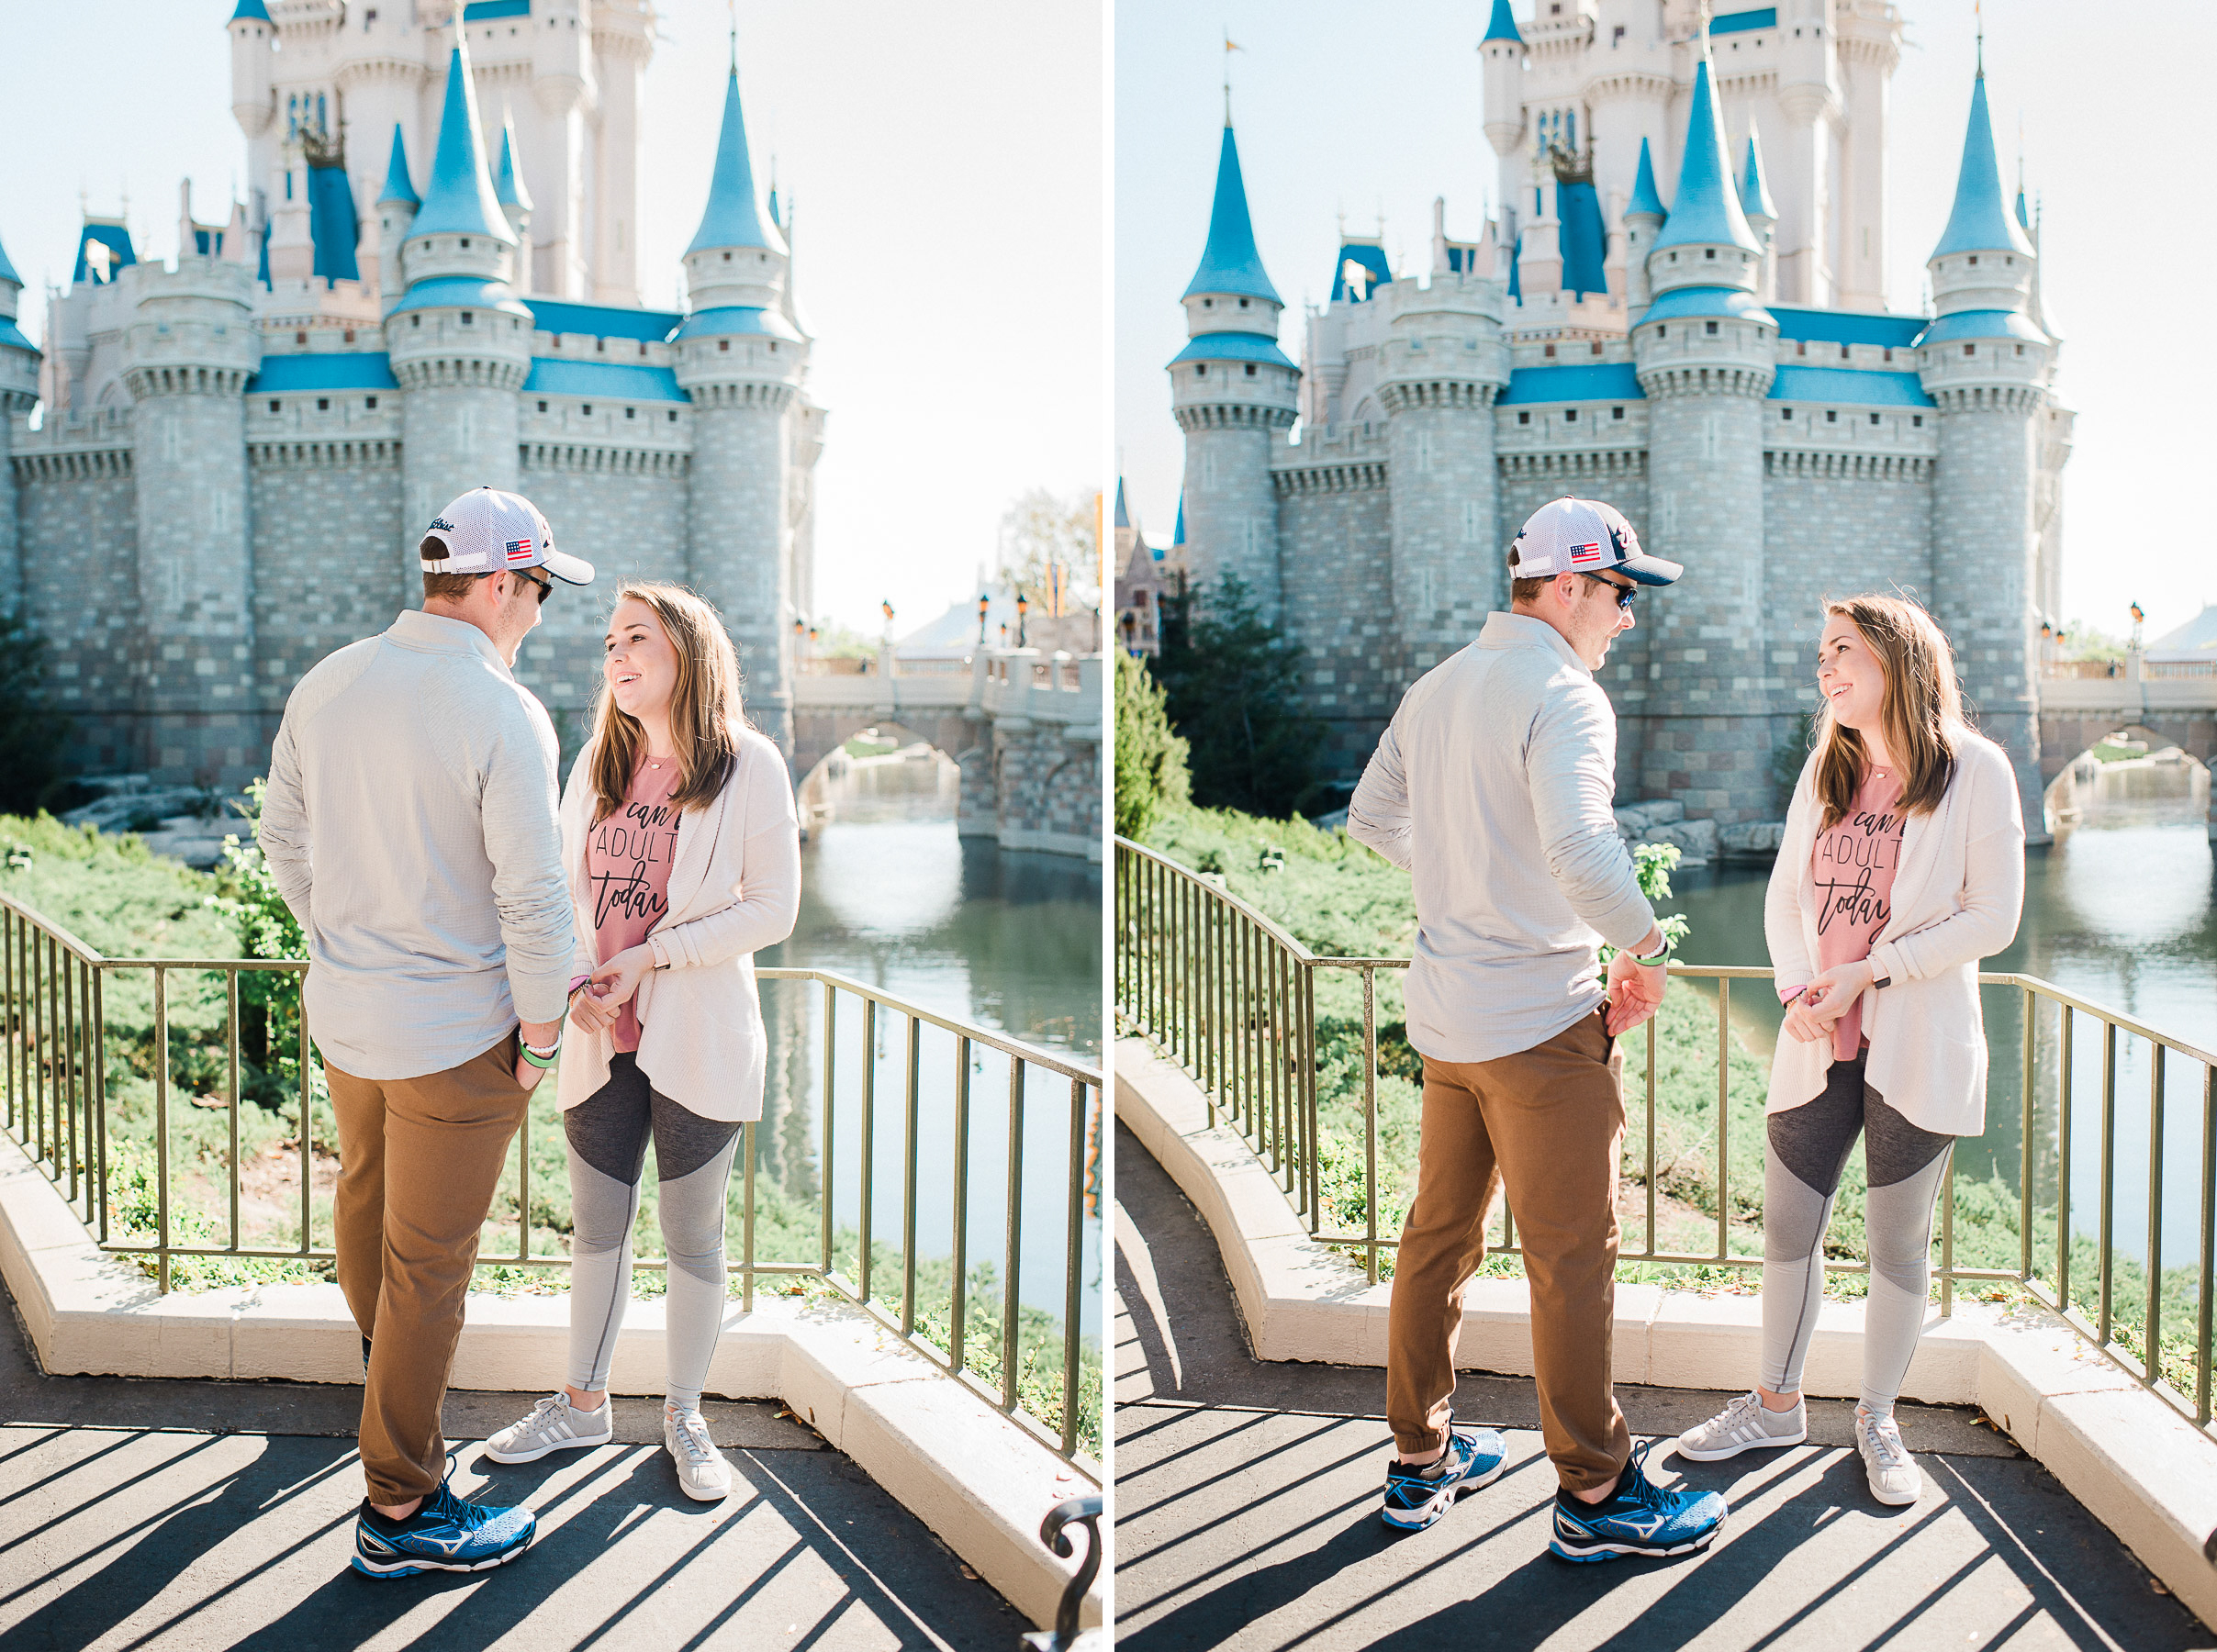 KateTaramykinStudios-Disney-World-Proposal-Kup-8.jpg